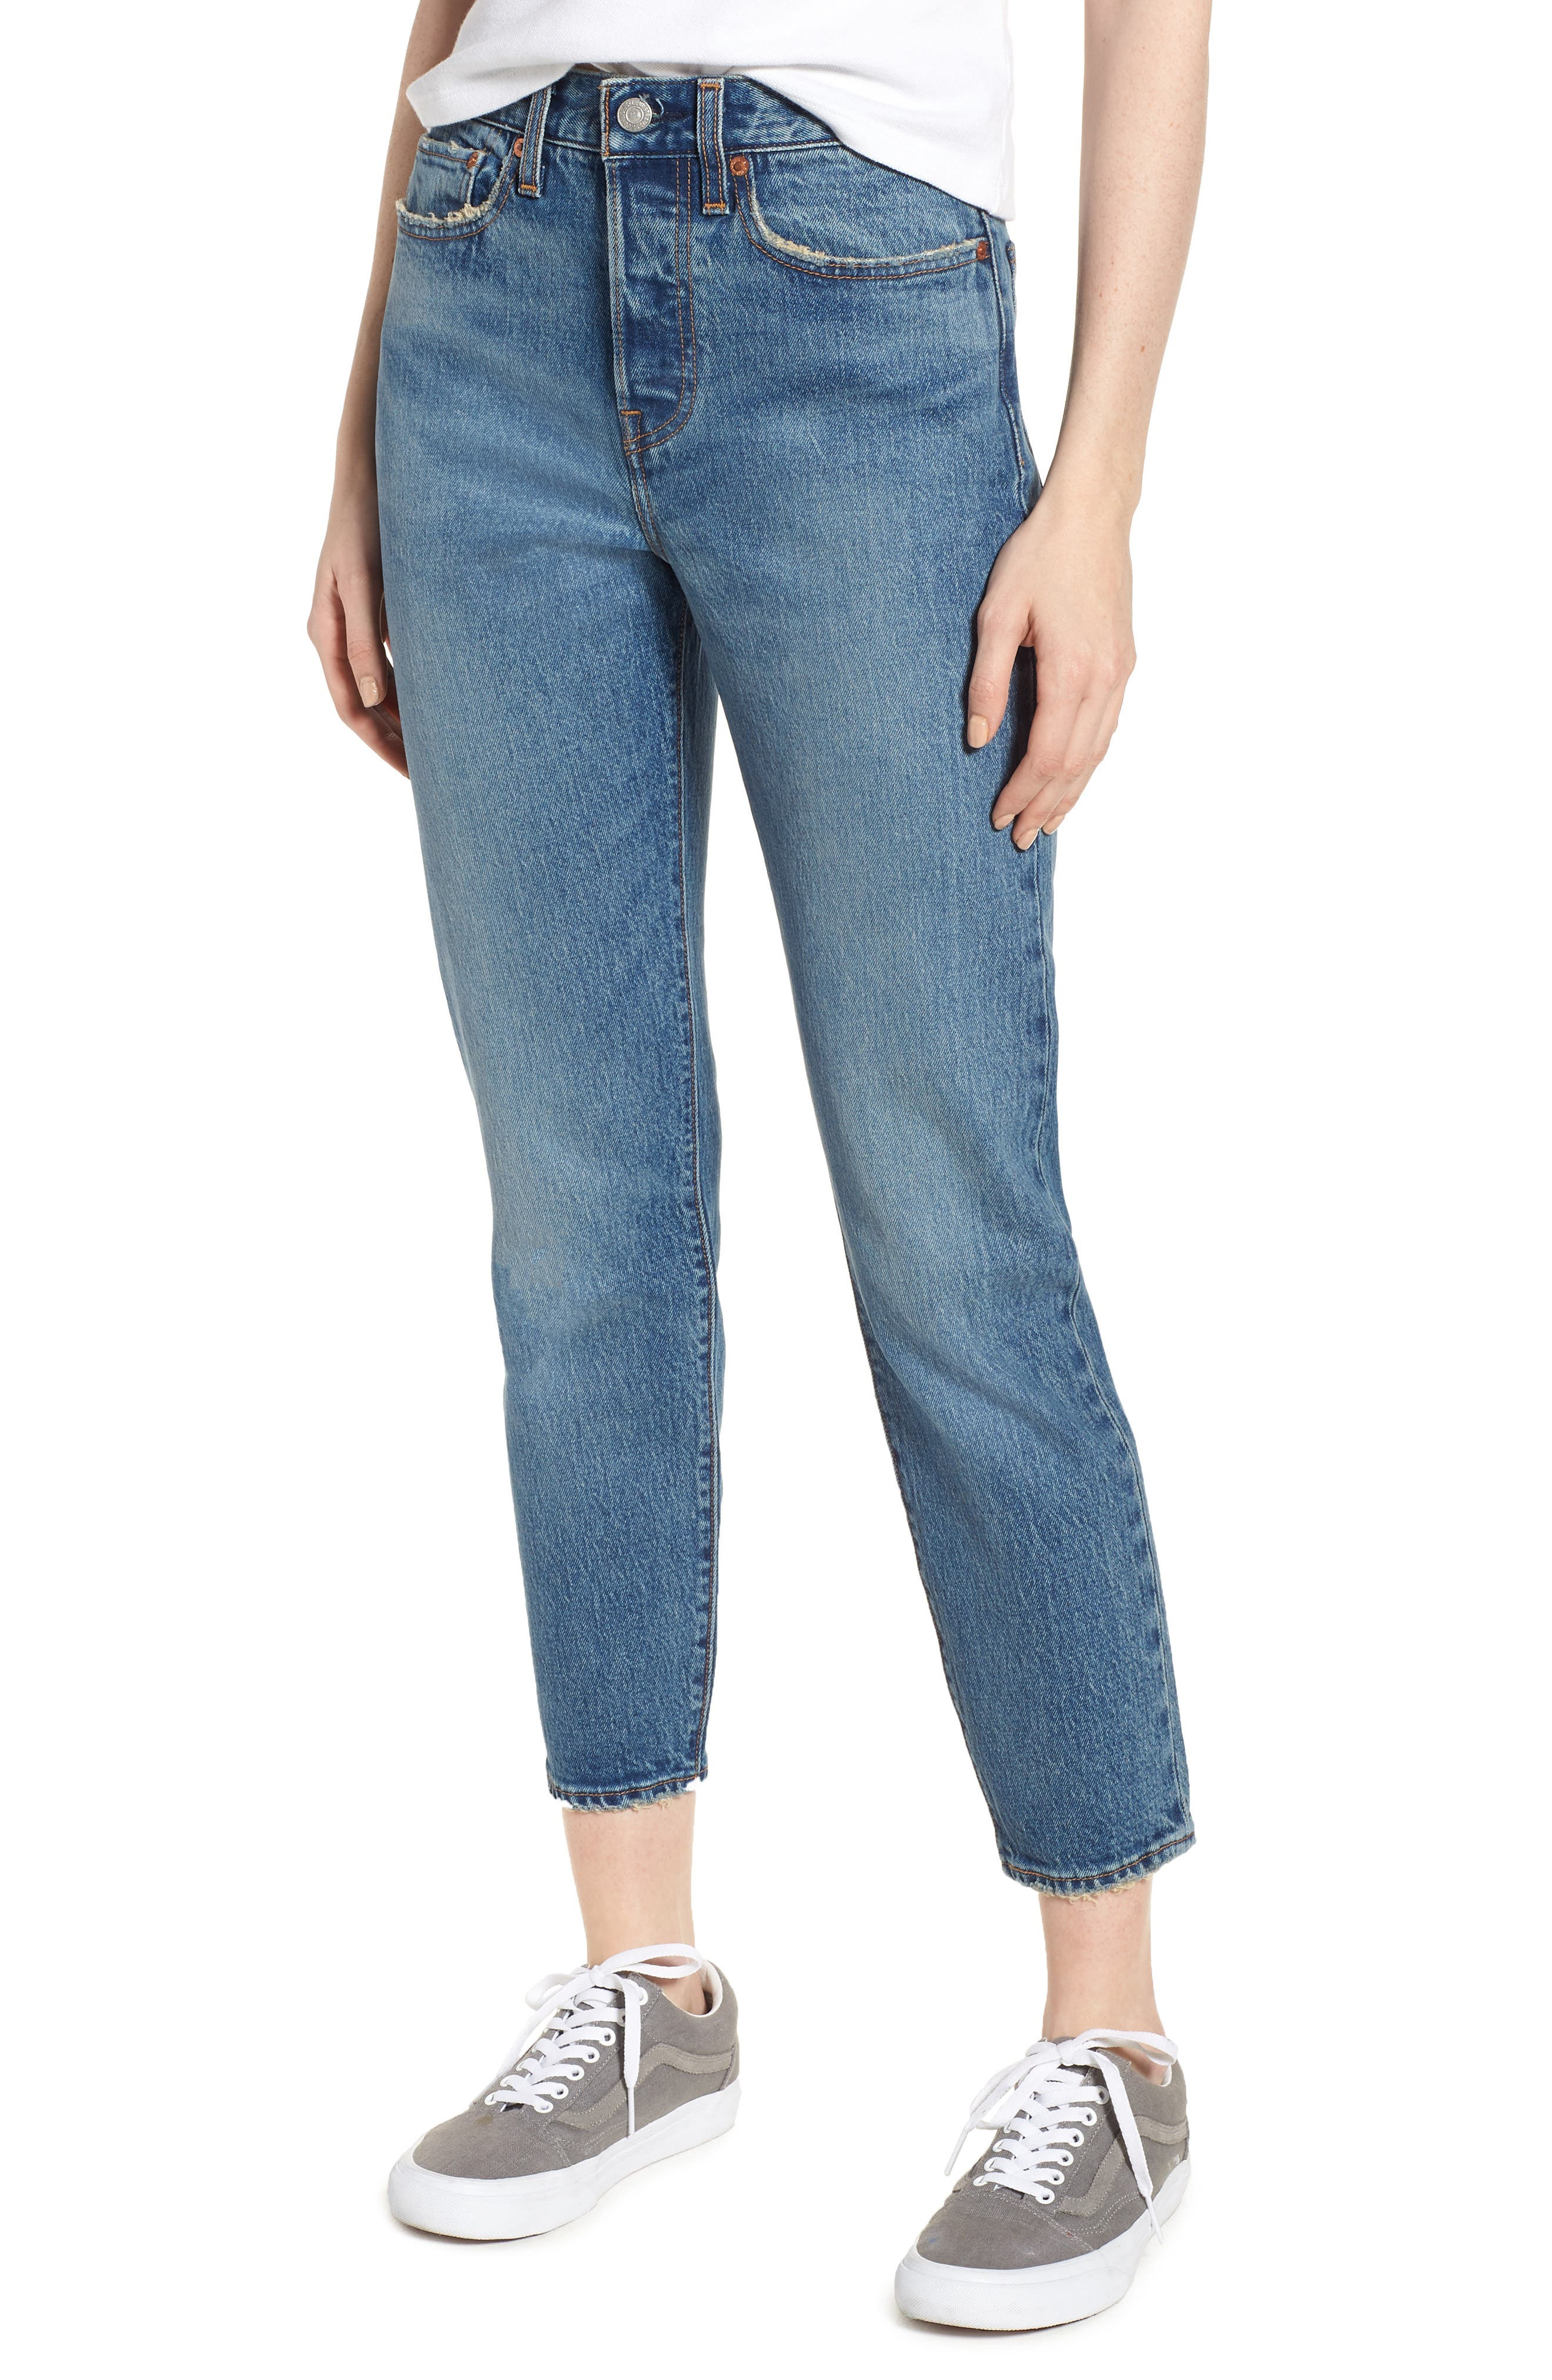 Wedgie Icon Fit High Waist Ankle Jeans,                             Main thumbnail 1, color,                             THESE DREAMS